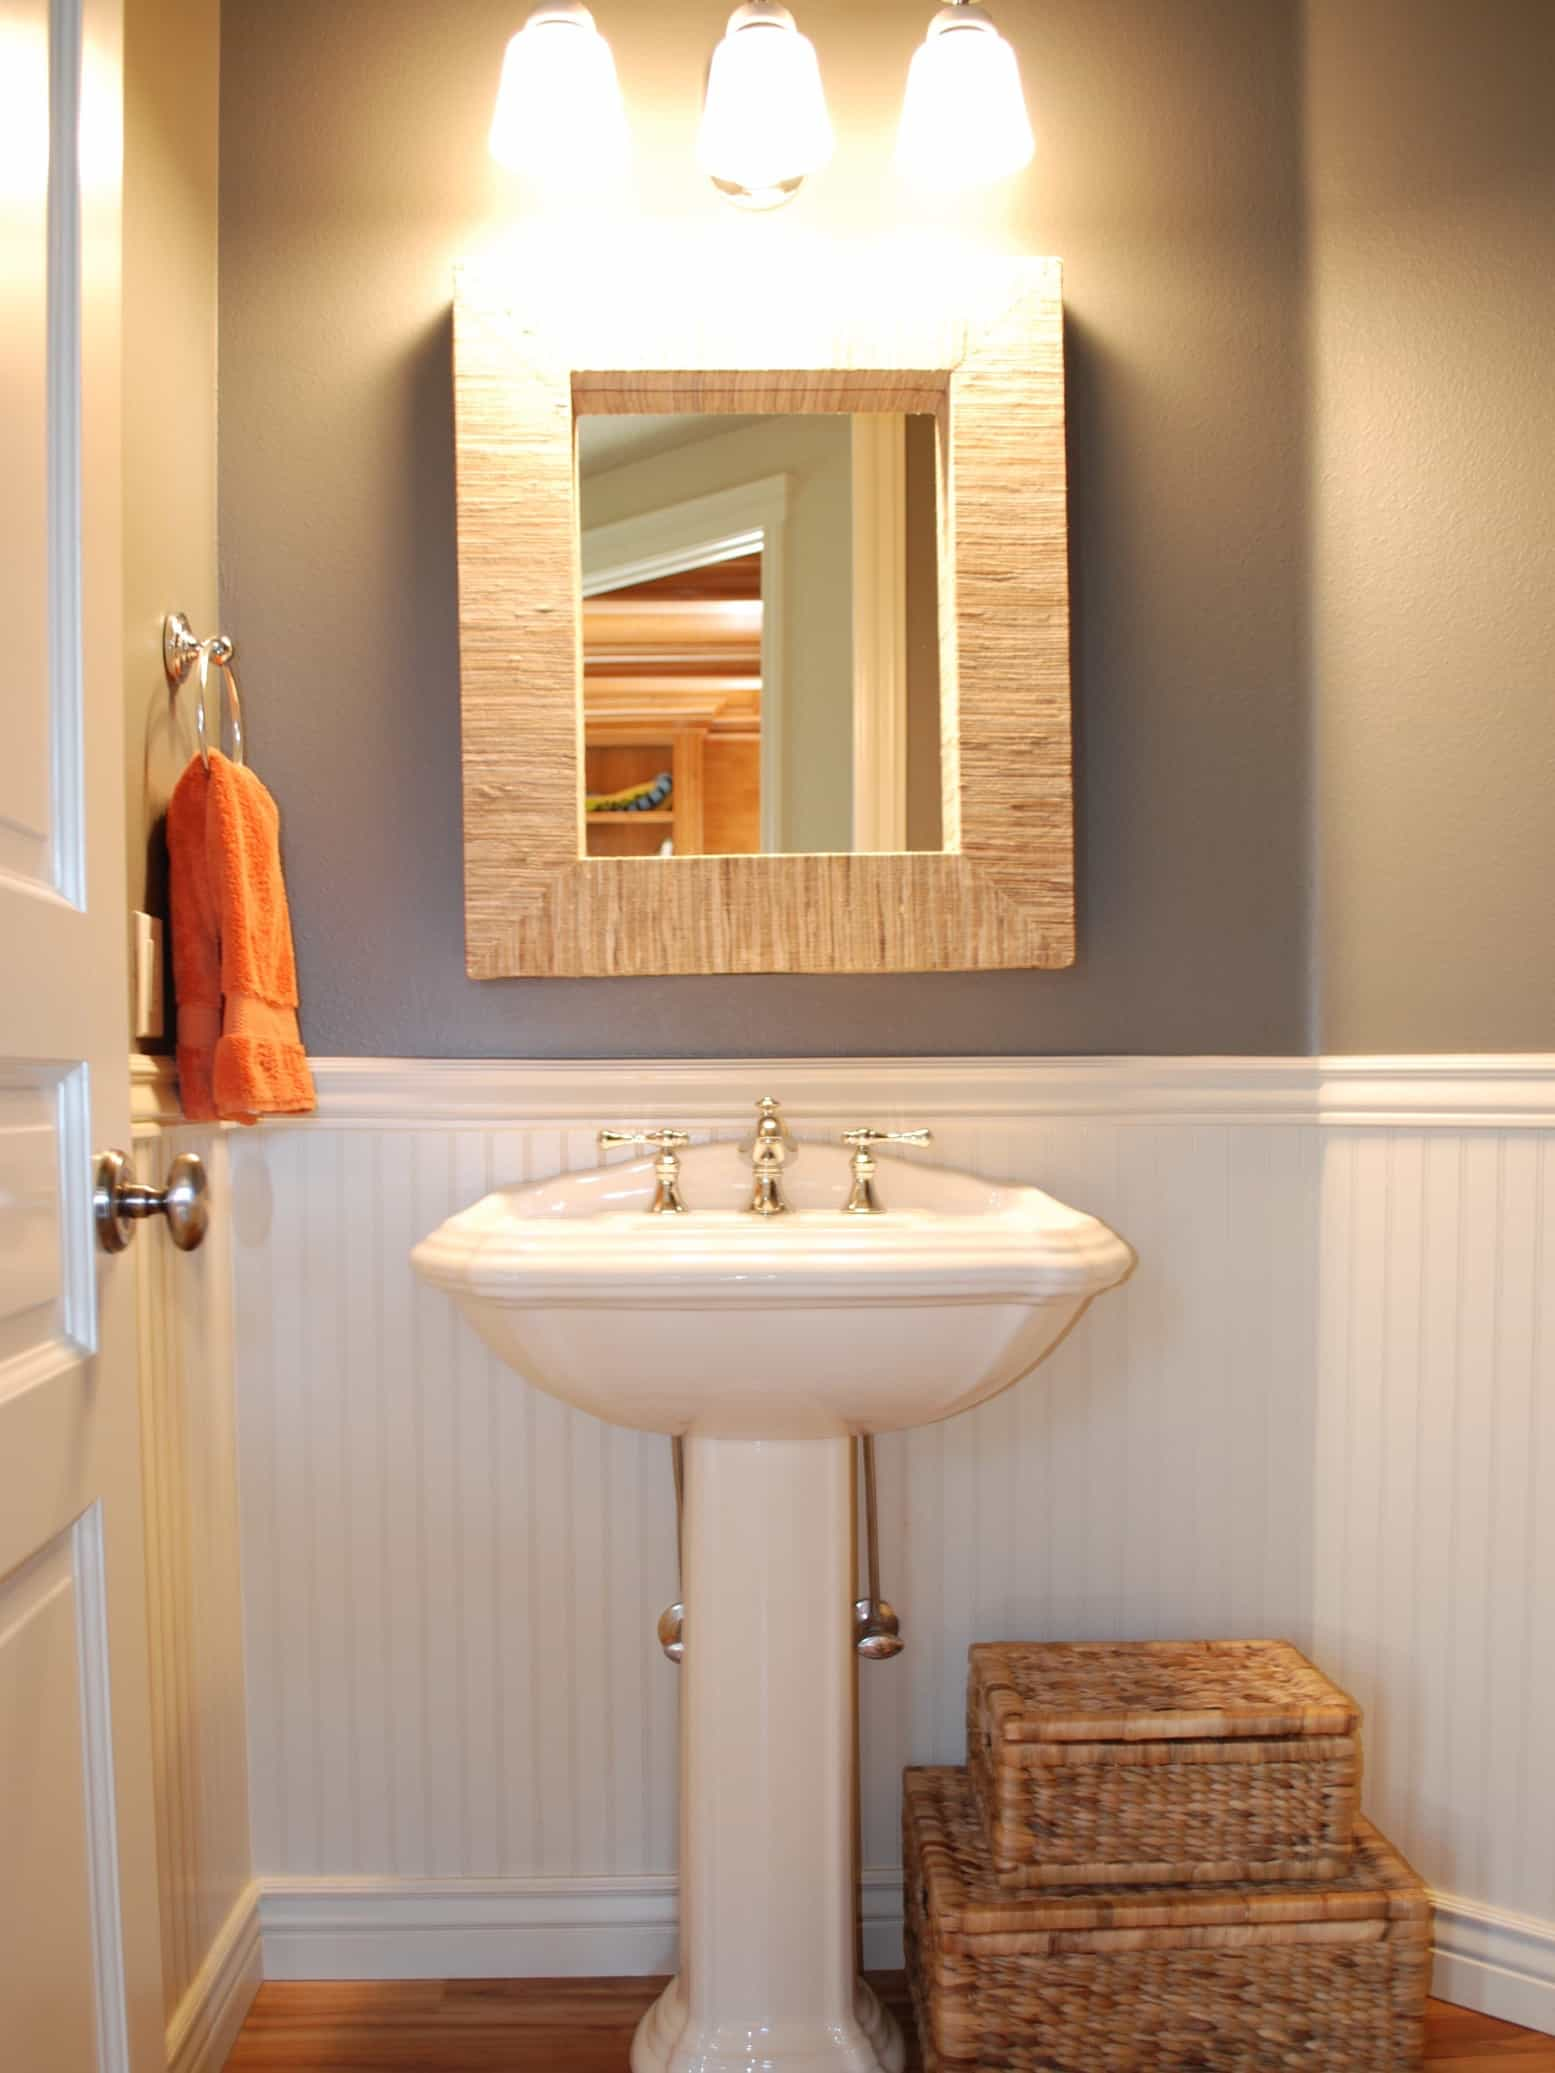 Featured Image of Cottage Powder Room With White Wainscoting And Storage Baskets